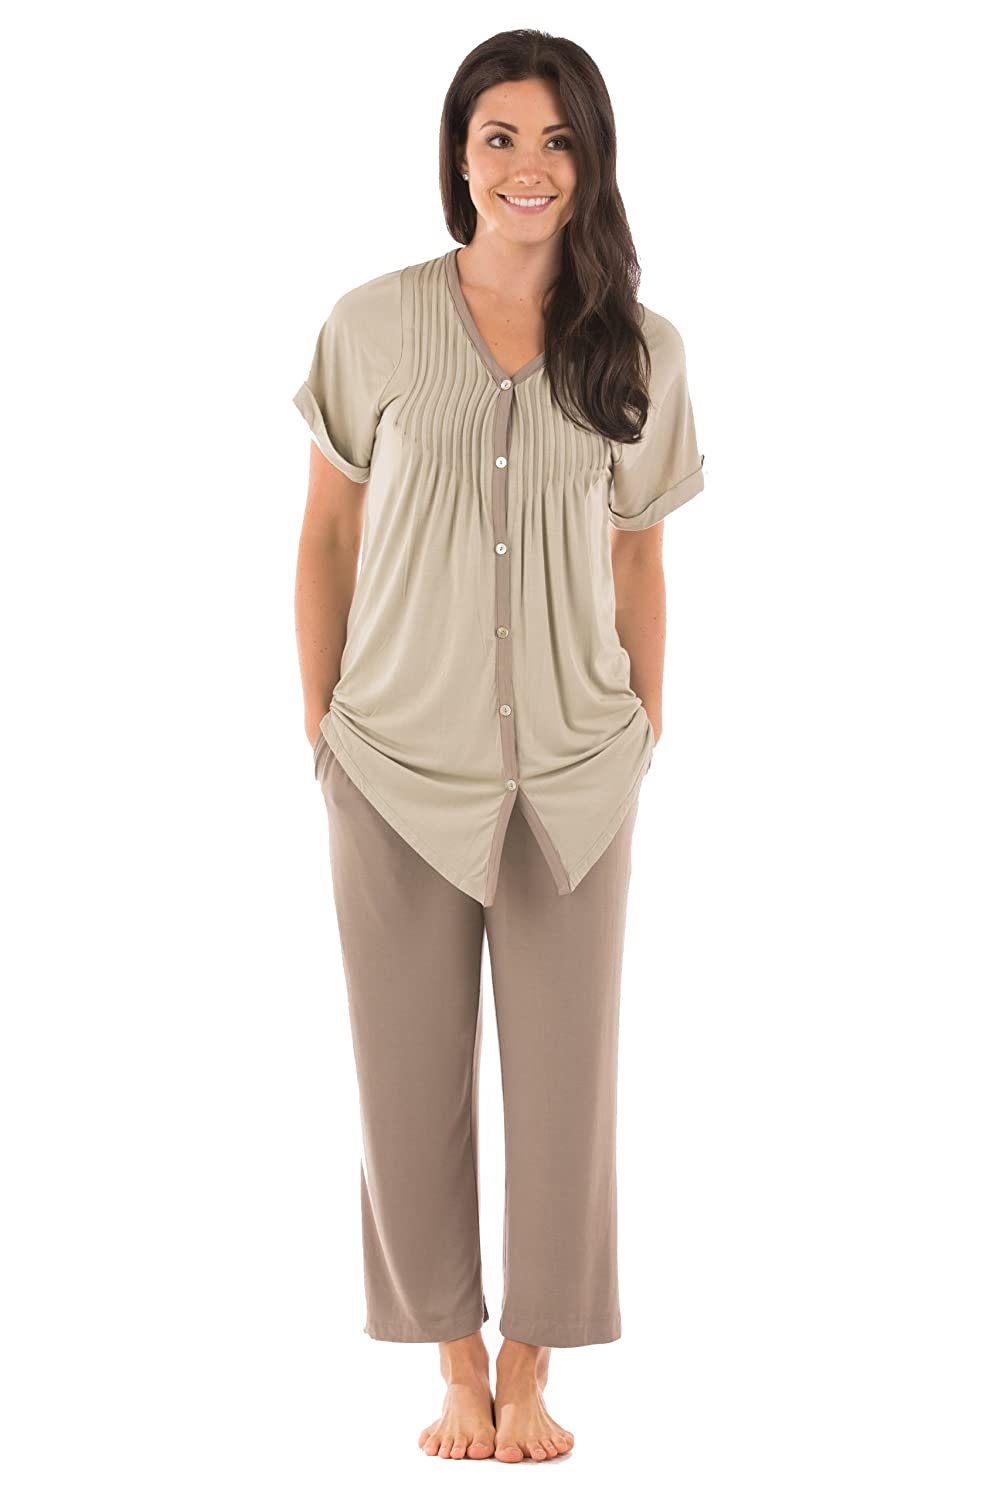 Sand Women's Short Sleeve PJ Set  PJs in Bamboo Viscose by Texere (Sweet Paradise)